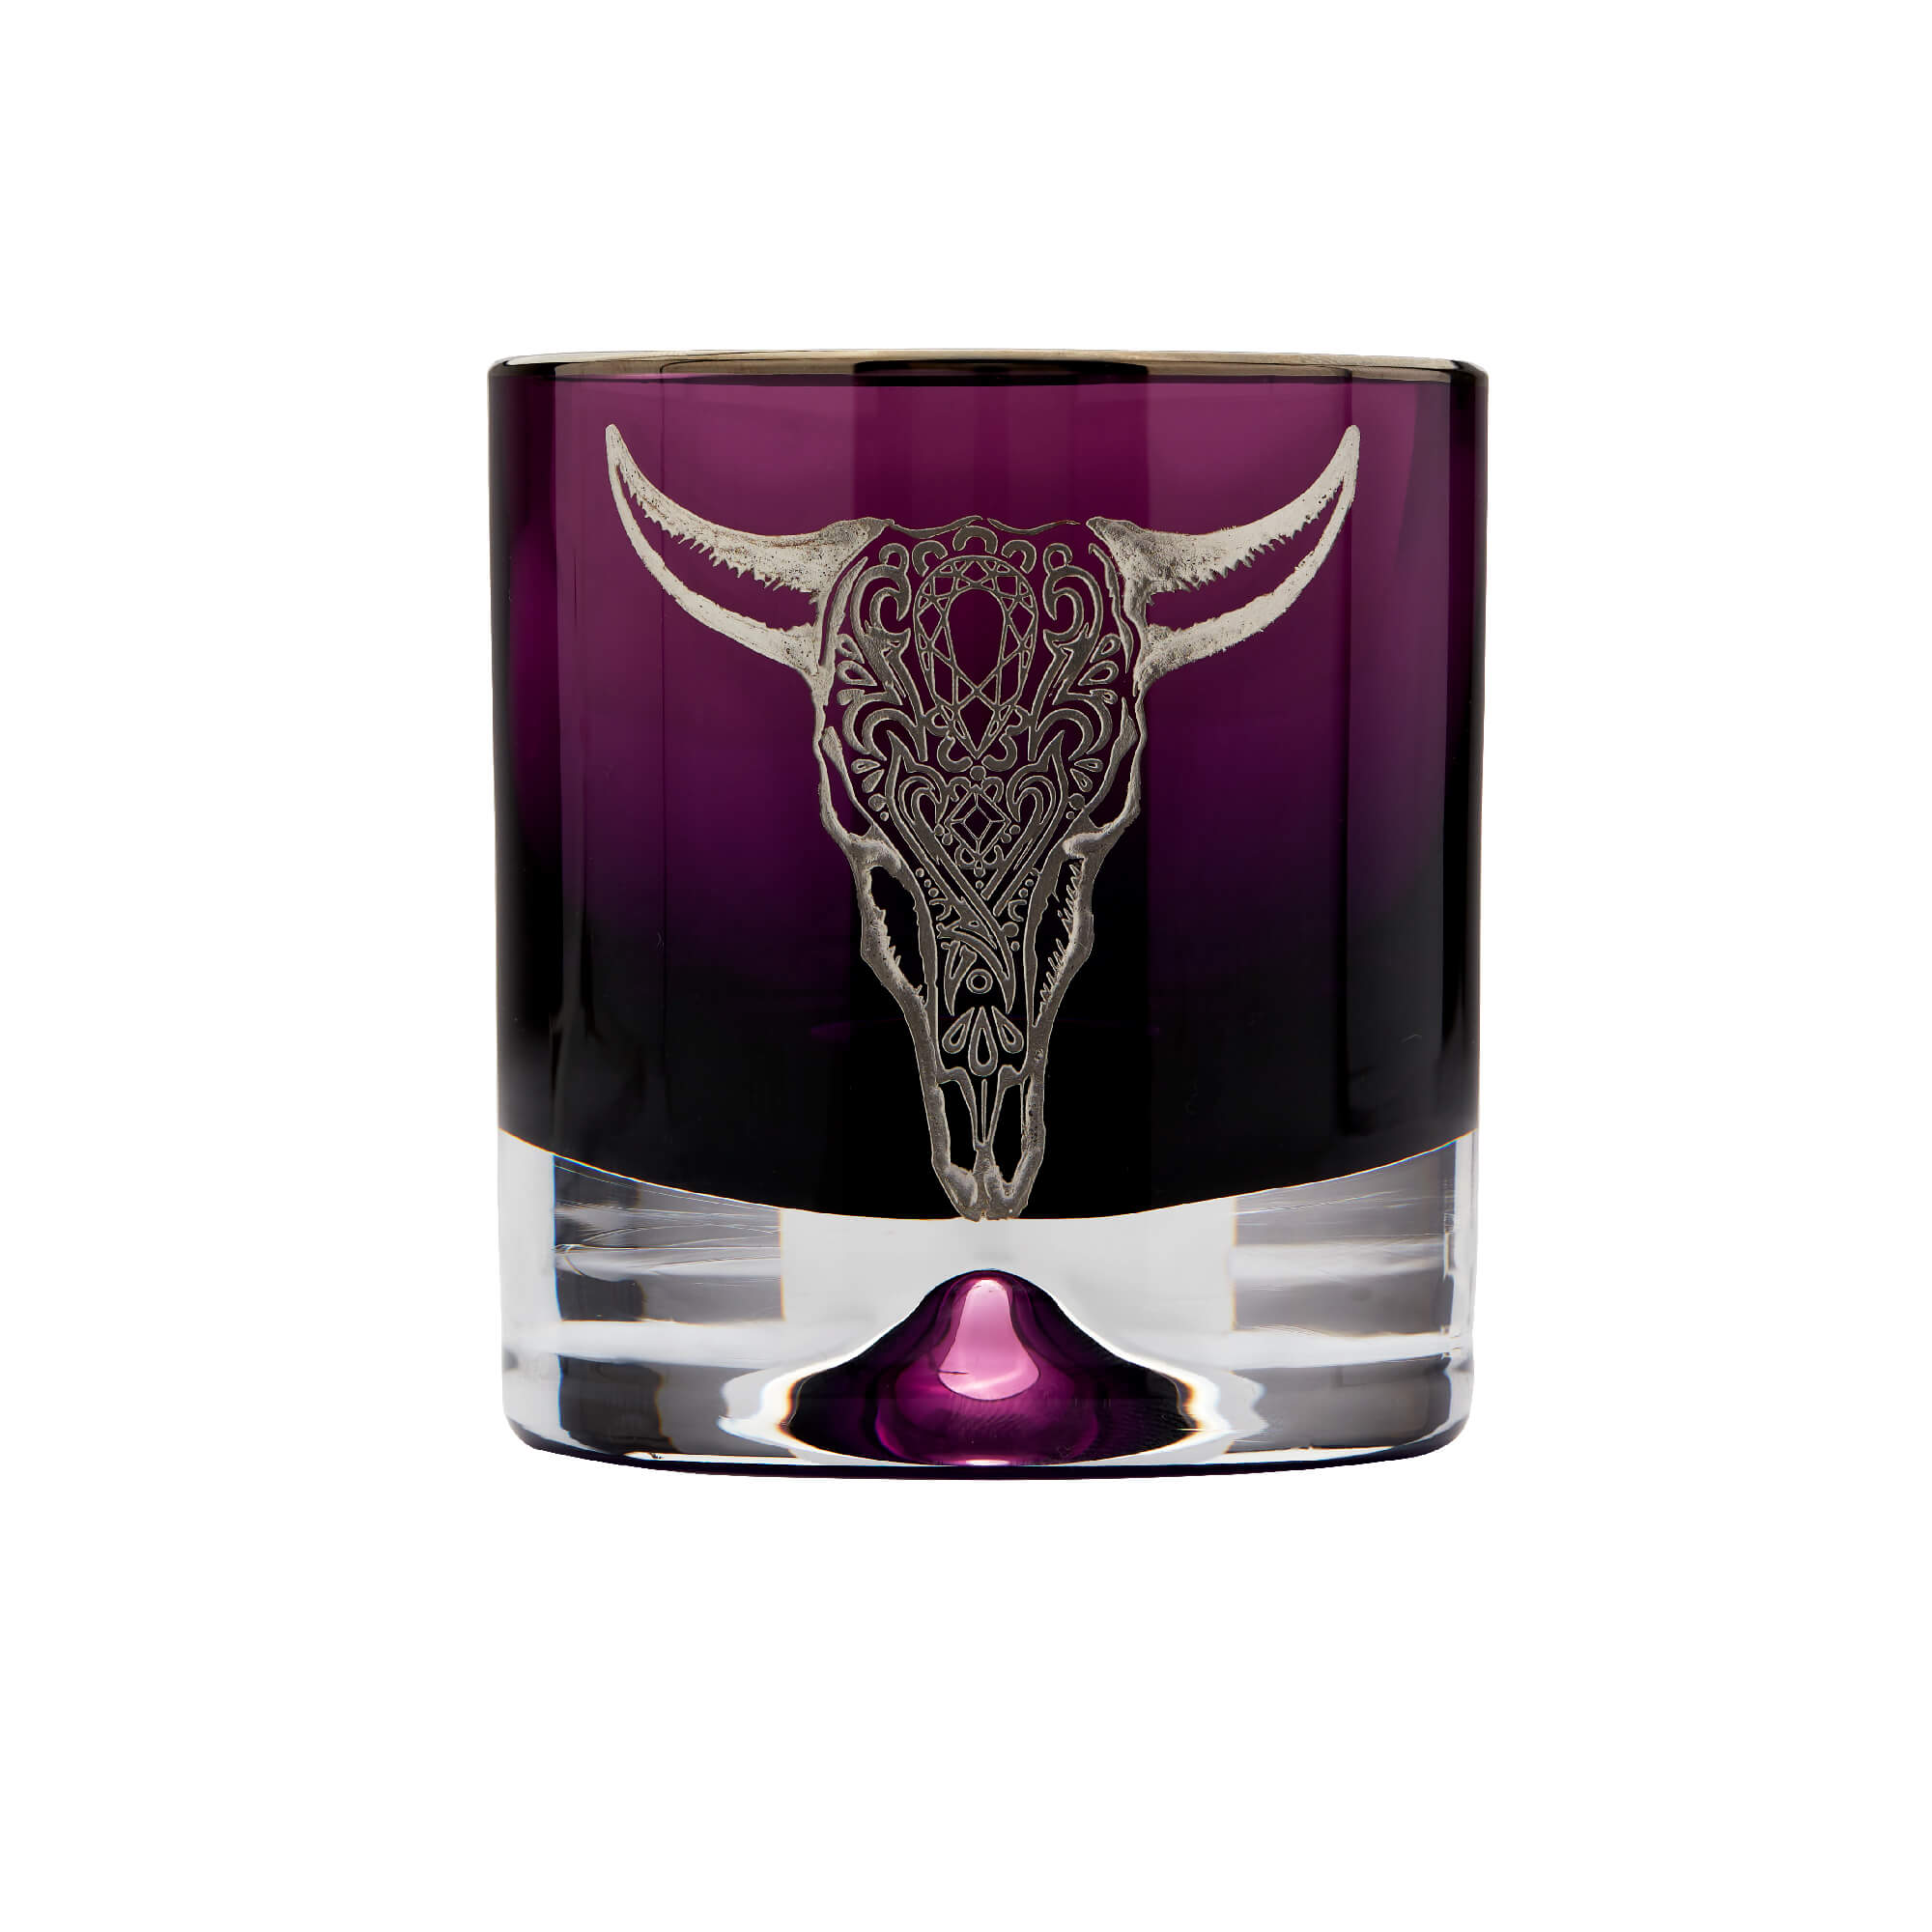 Amethyst Tumbler with Engraved Cow | Stephen Webster